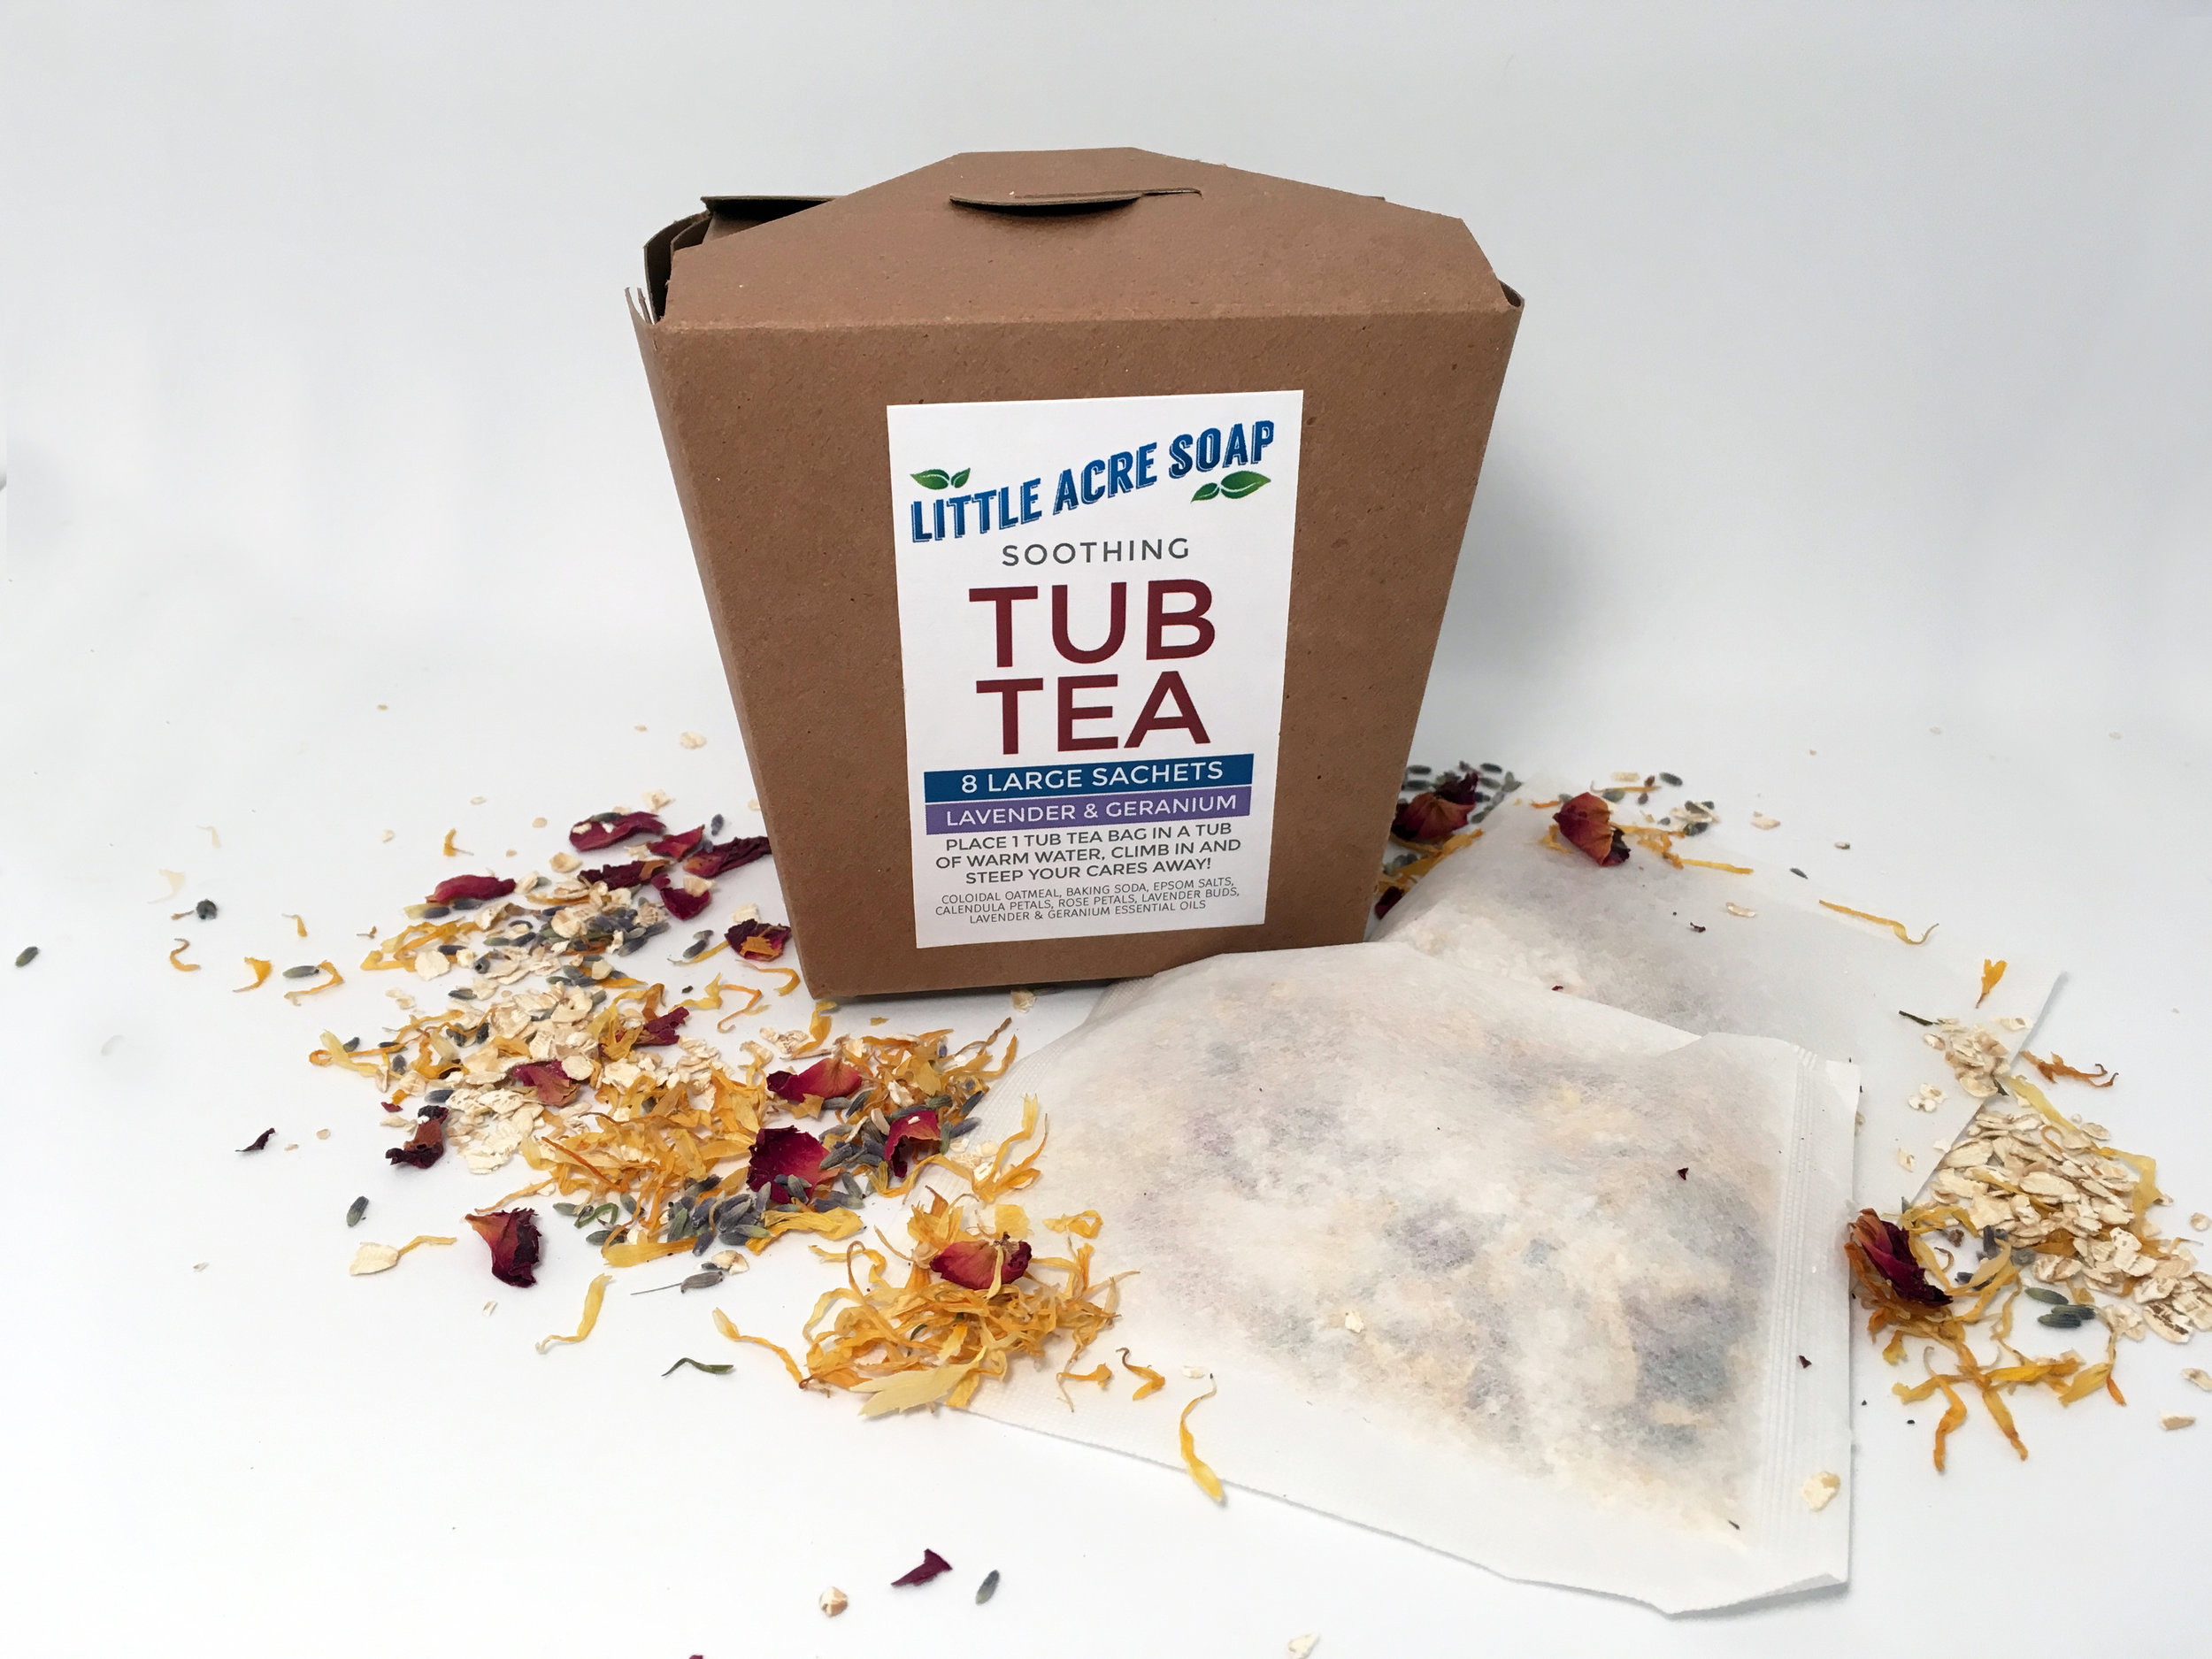 TUB TEA  A soothing soak in gently scented waters while your skin is nourished, conditioned and soothed — mmm, sounds great! Each box contains 8 large tea bags filled with Colloidal Oatmeal, Baking Soda, Epsom Salts, Calendula Flowers, Rose Petals, Lavender Buds, and is scented with Lavender and Geranium essential oils. Place a bag in your warm bath and steep your cares away! Makes a great gift (or keep it for yourself...you deserve it!).  $10